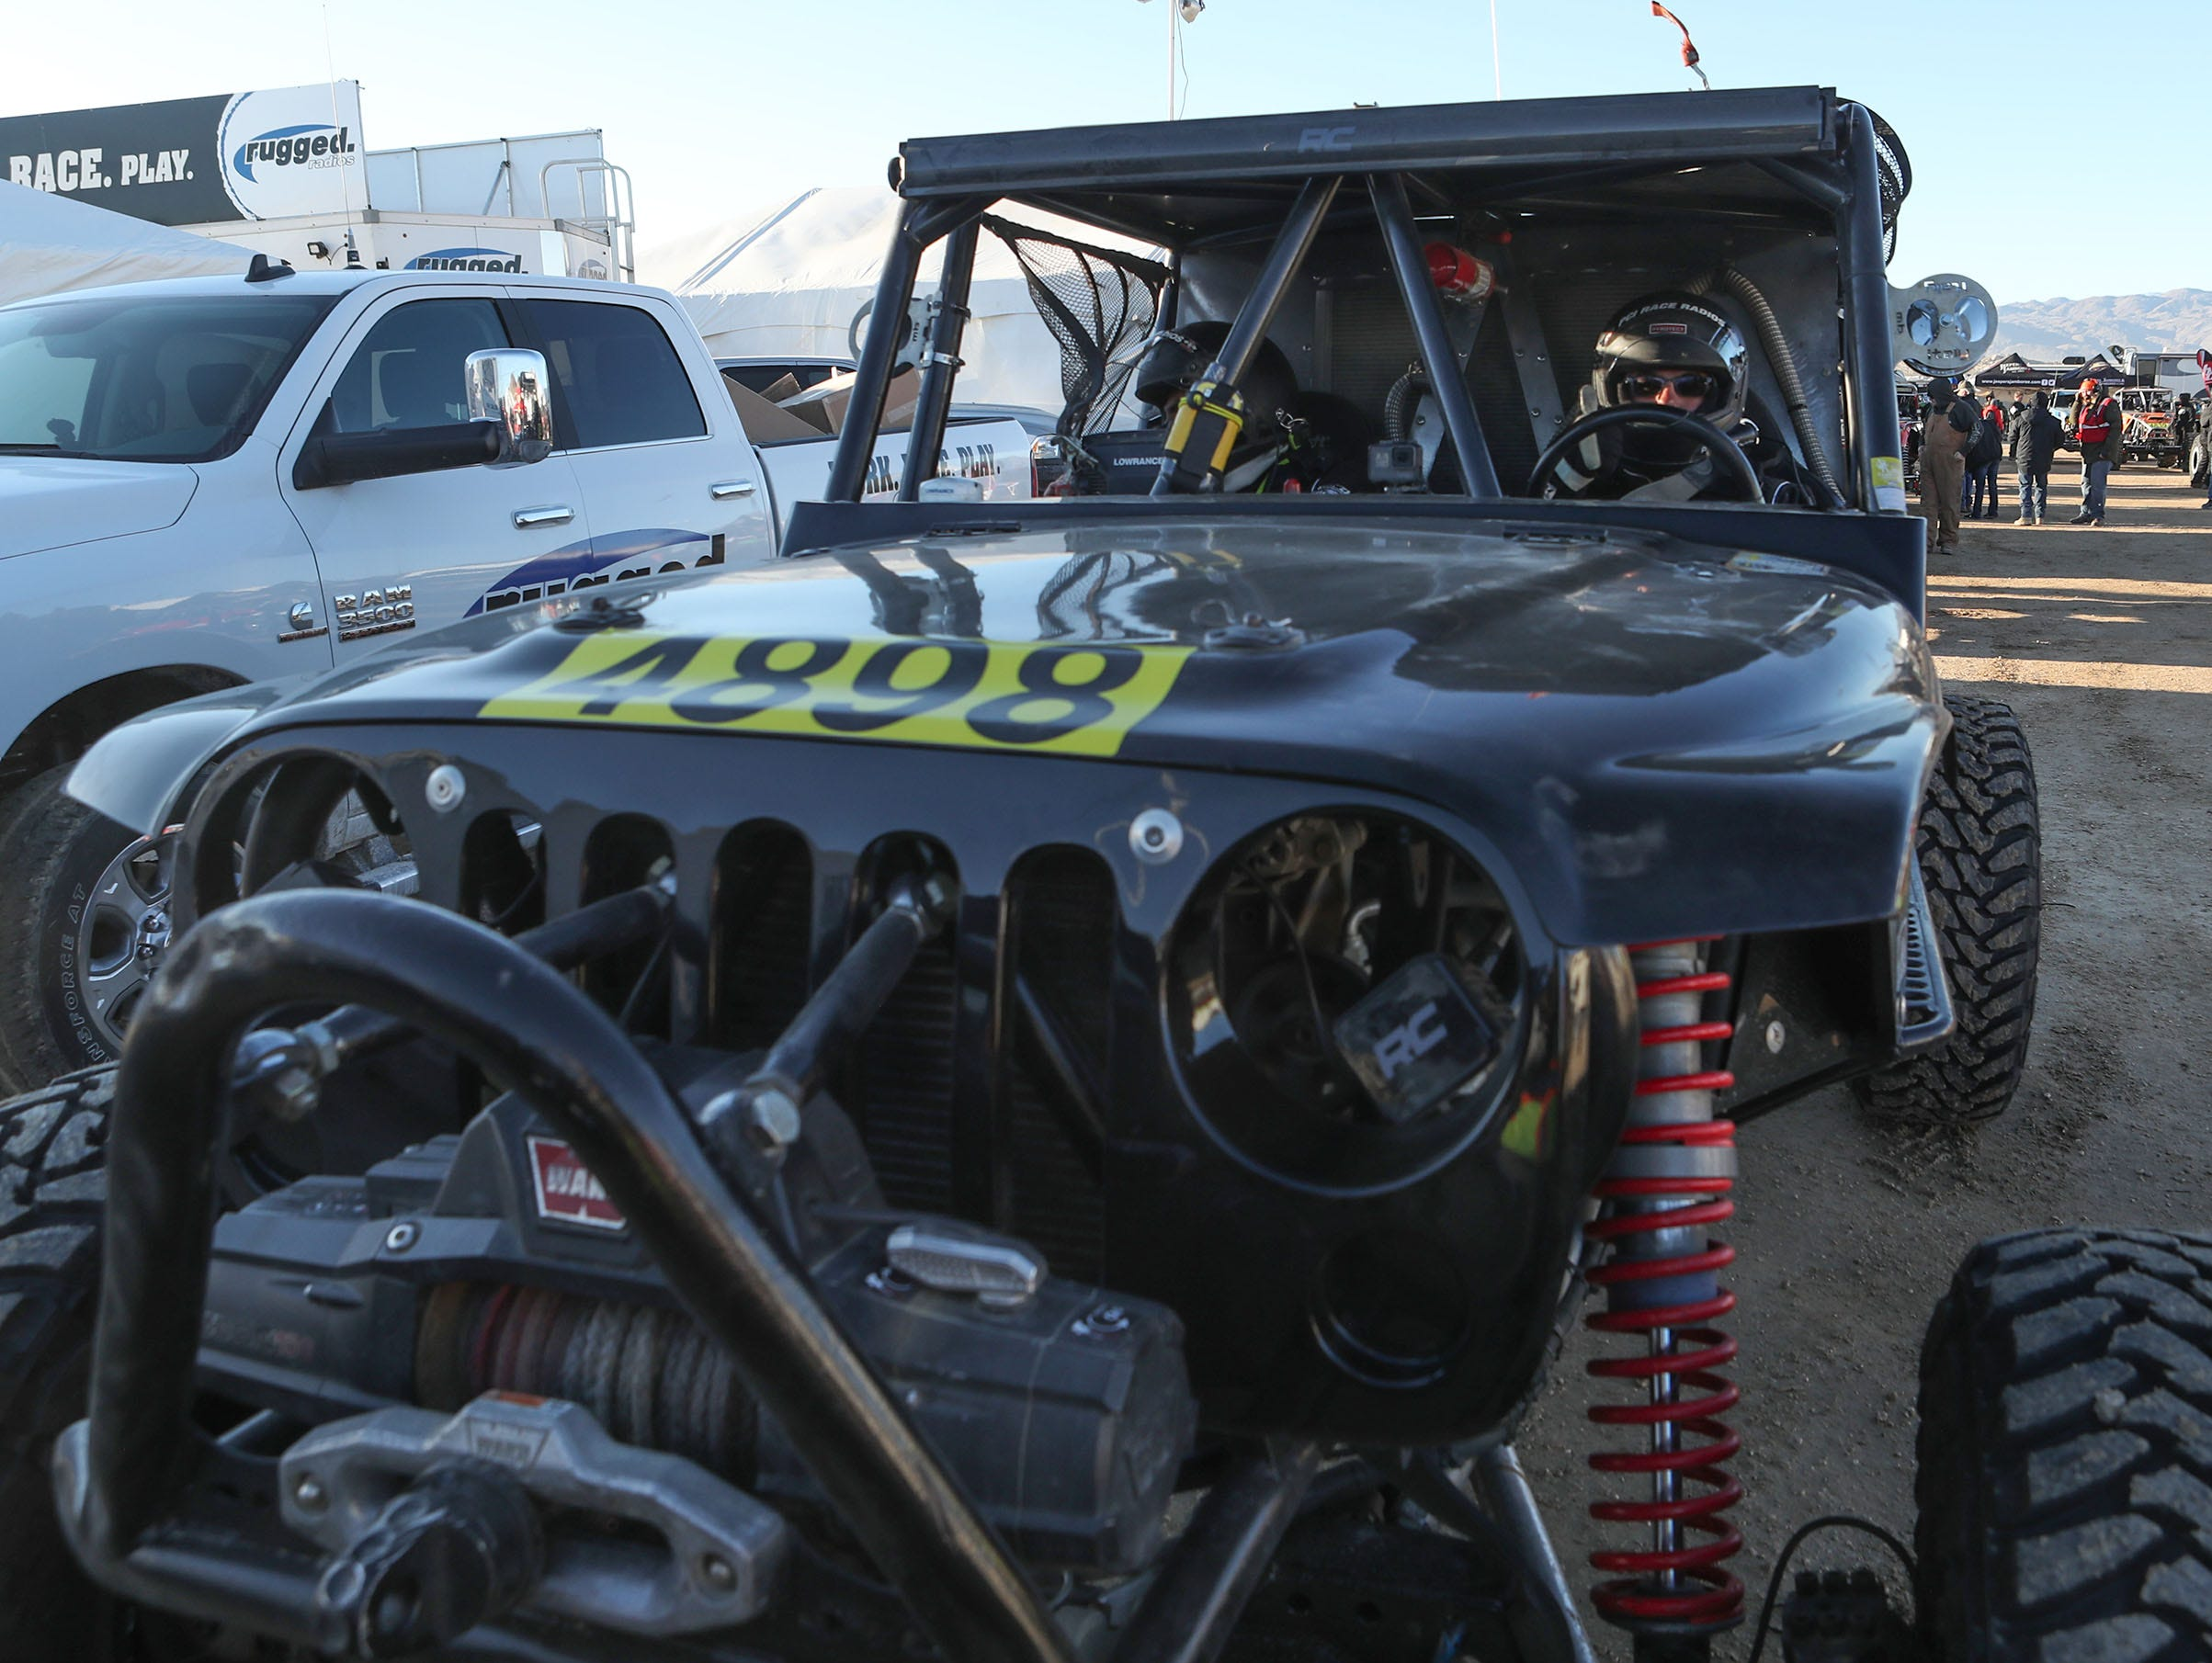 Indio mechanic Arturo Sora, right, and Vicente Farias get ready to race in the King of the Hammers Every Man Challenge race in Landers, February 6, 2019.